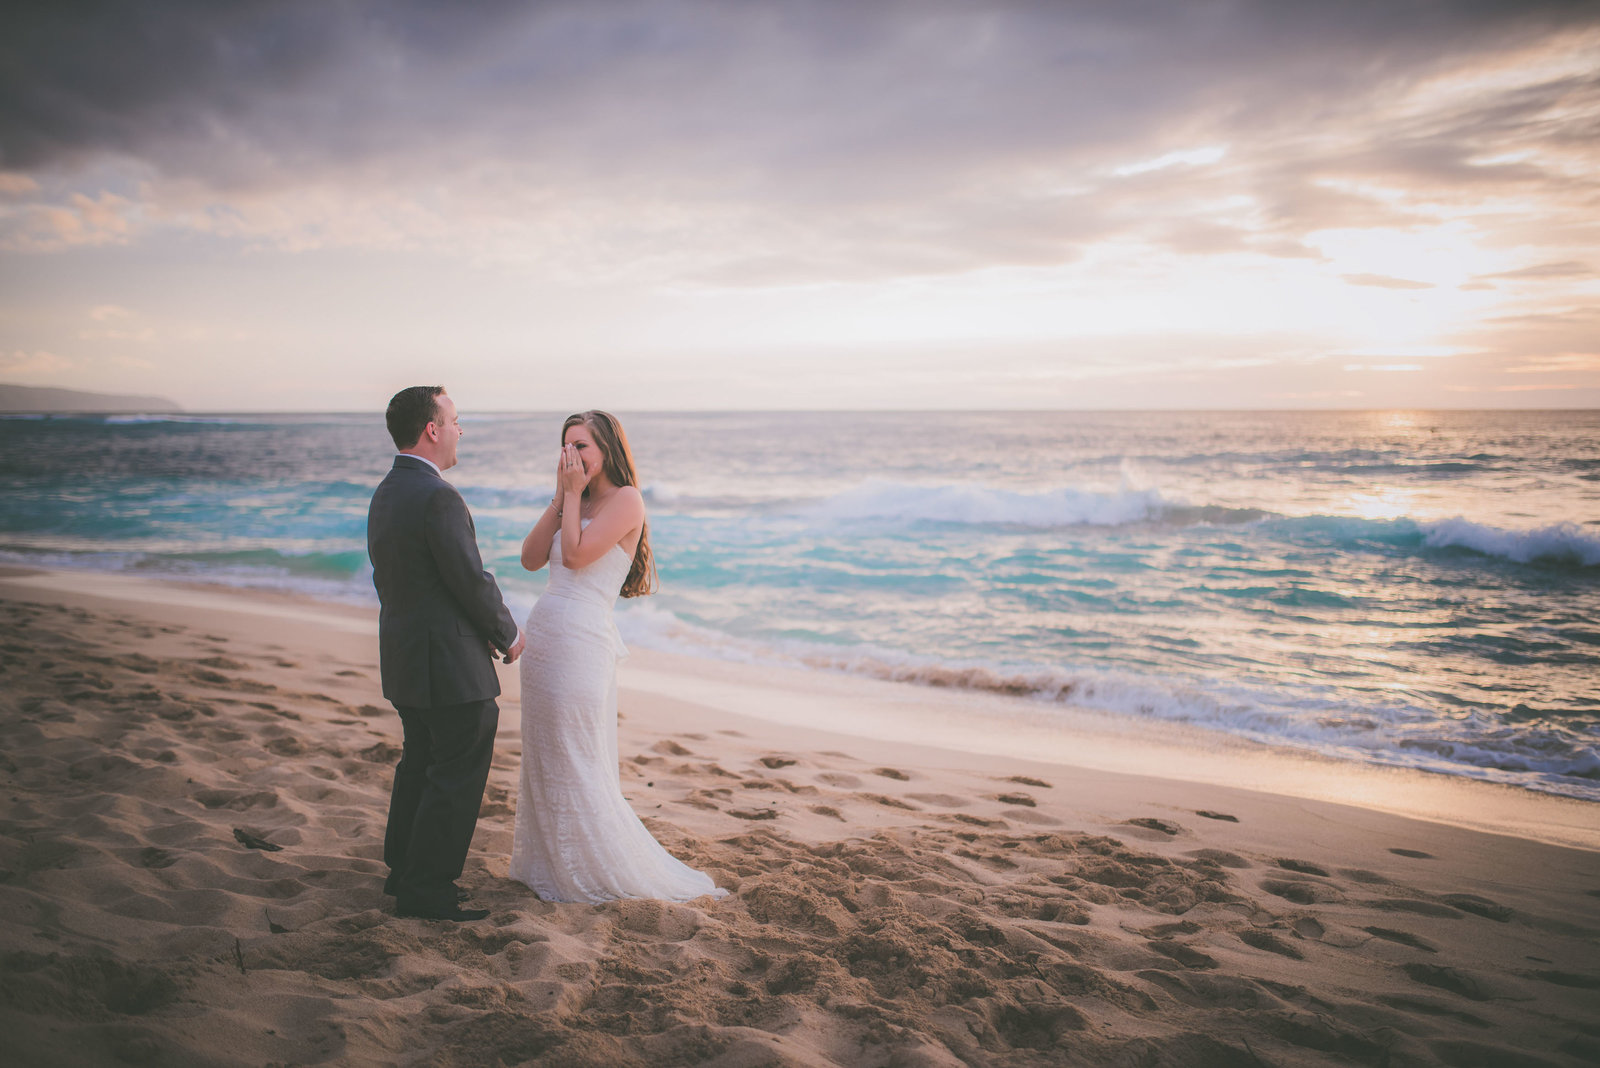 Bride places hands on her face while looking at groom on Oahu beach.